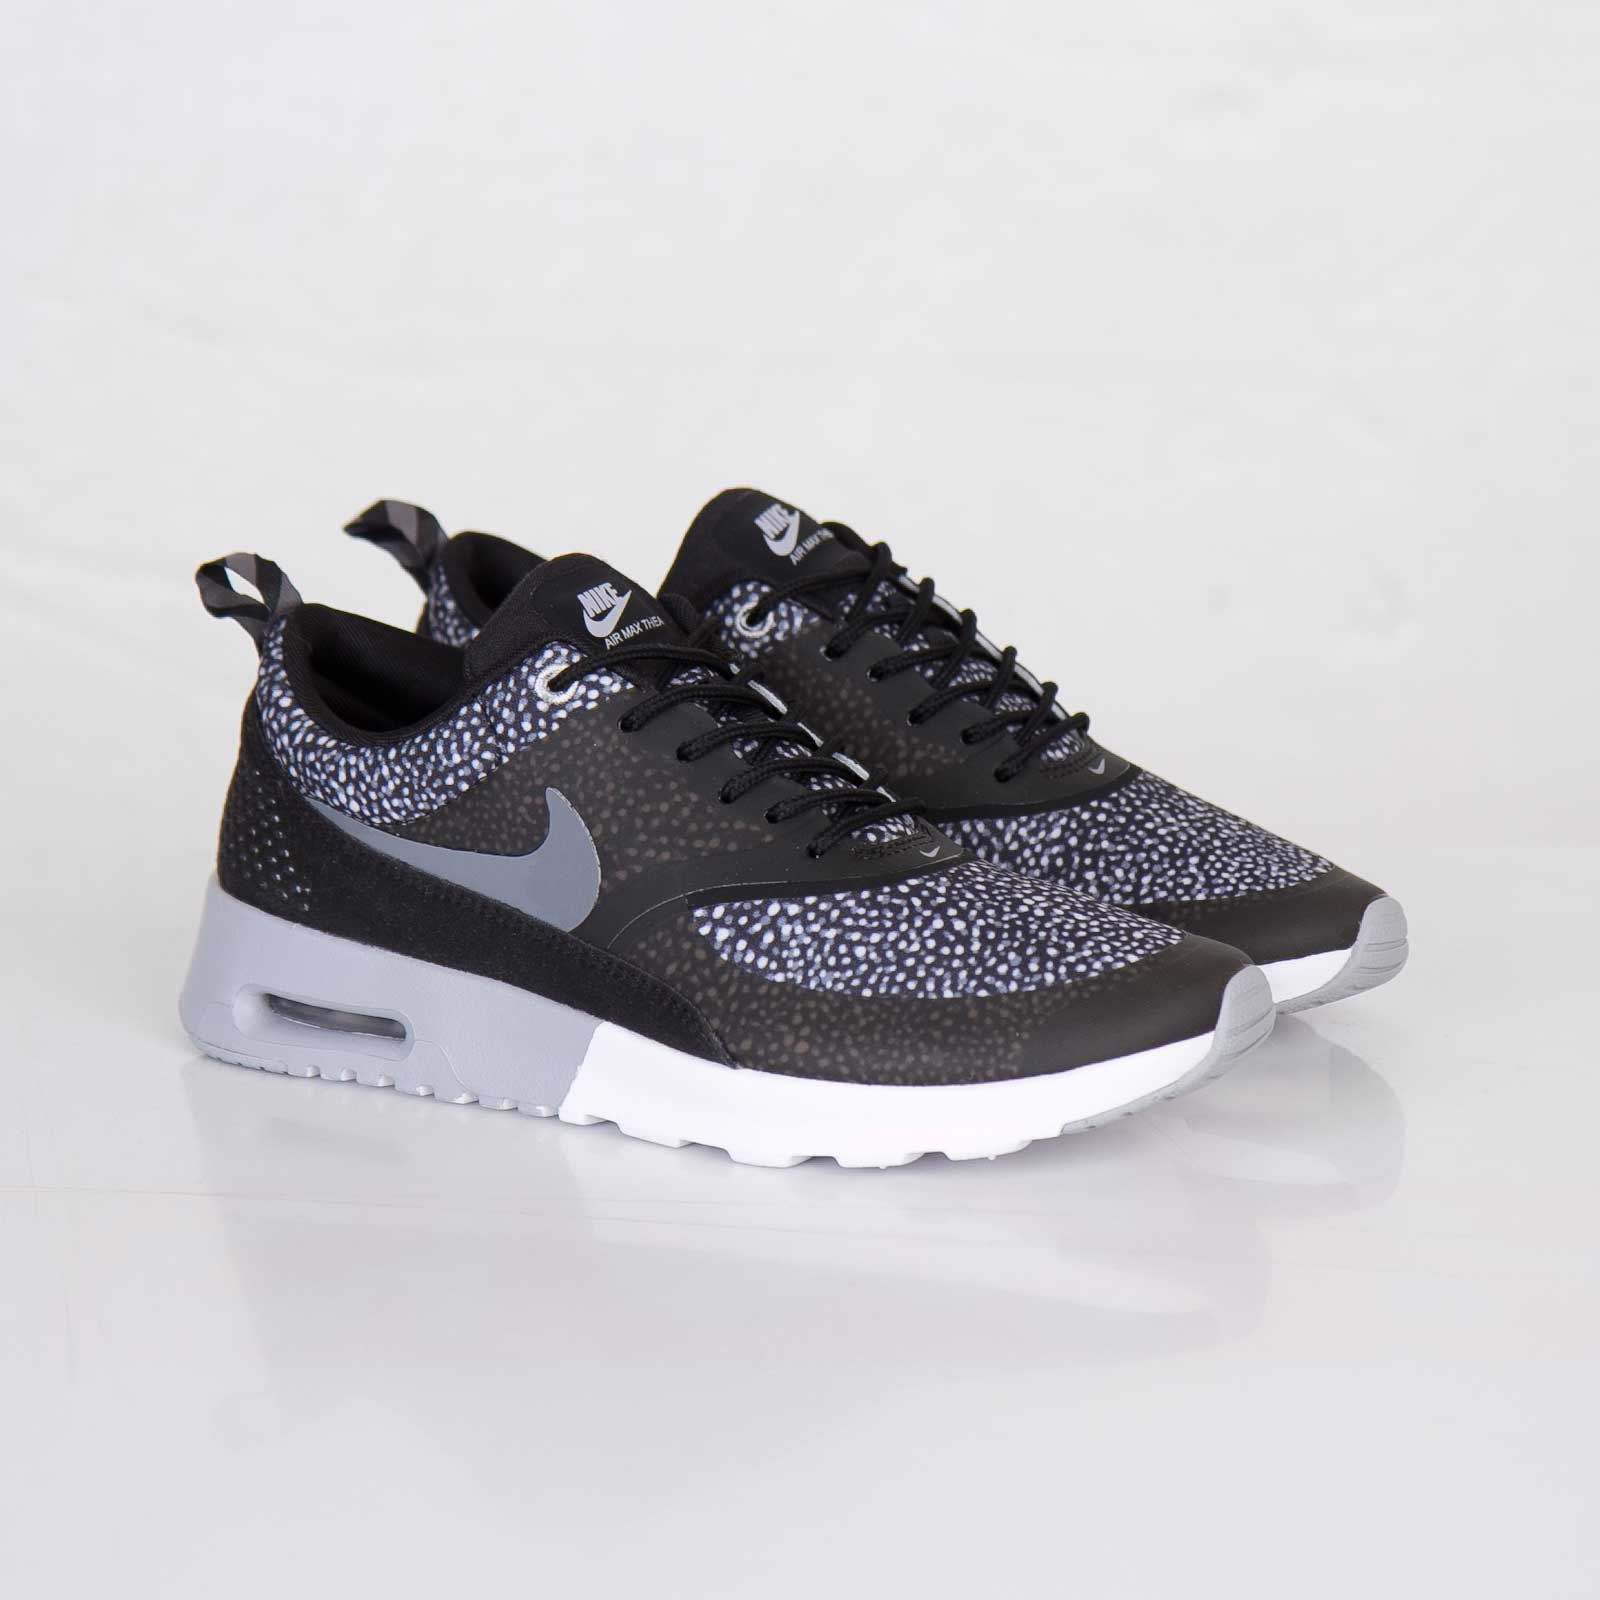 Nike Wmns Air Max Thea Print 599408 002 Sneakersnstuff